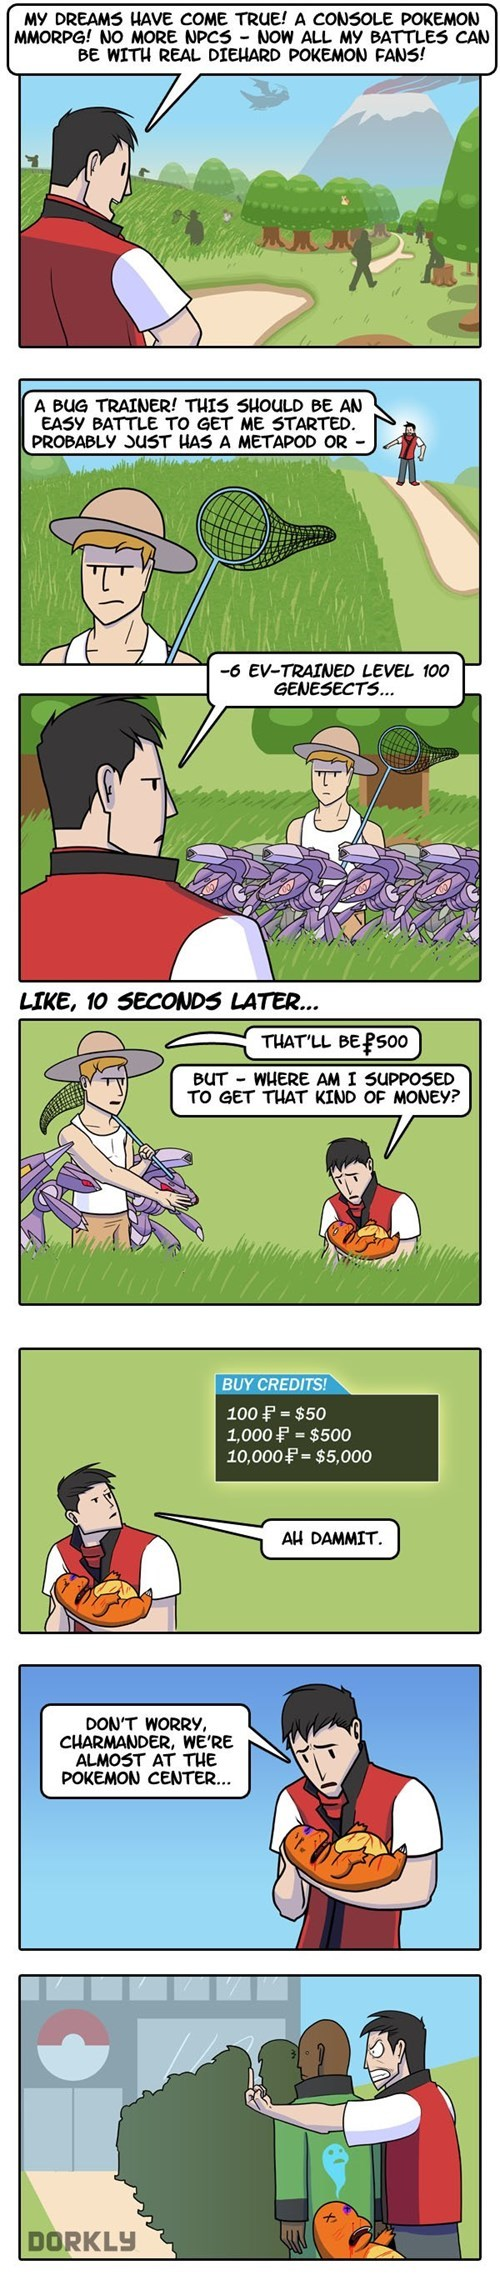 Pokémon dorkly web comics MMO - 8058259712